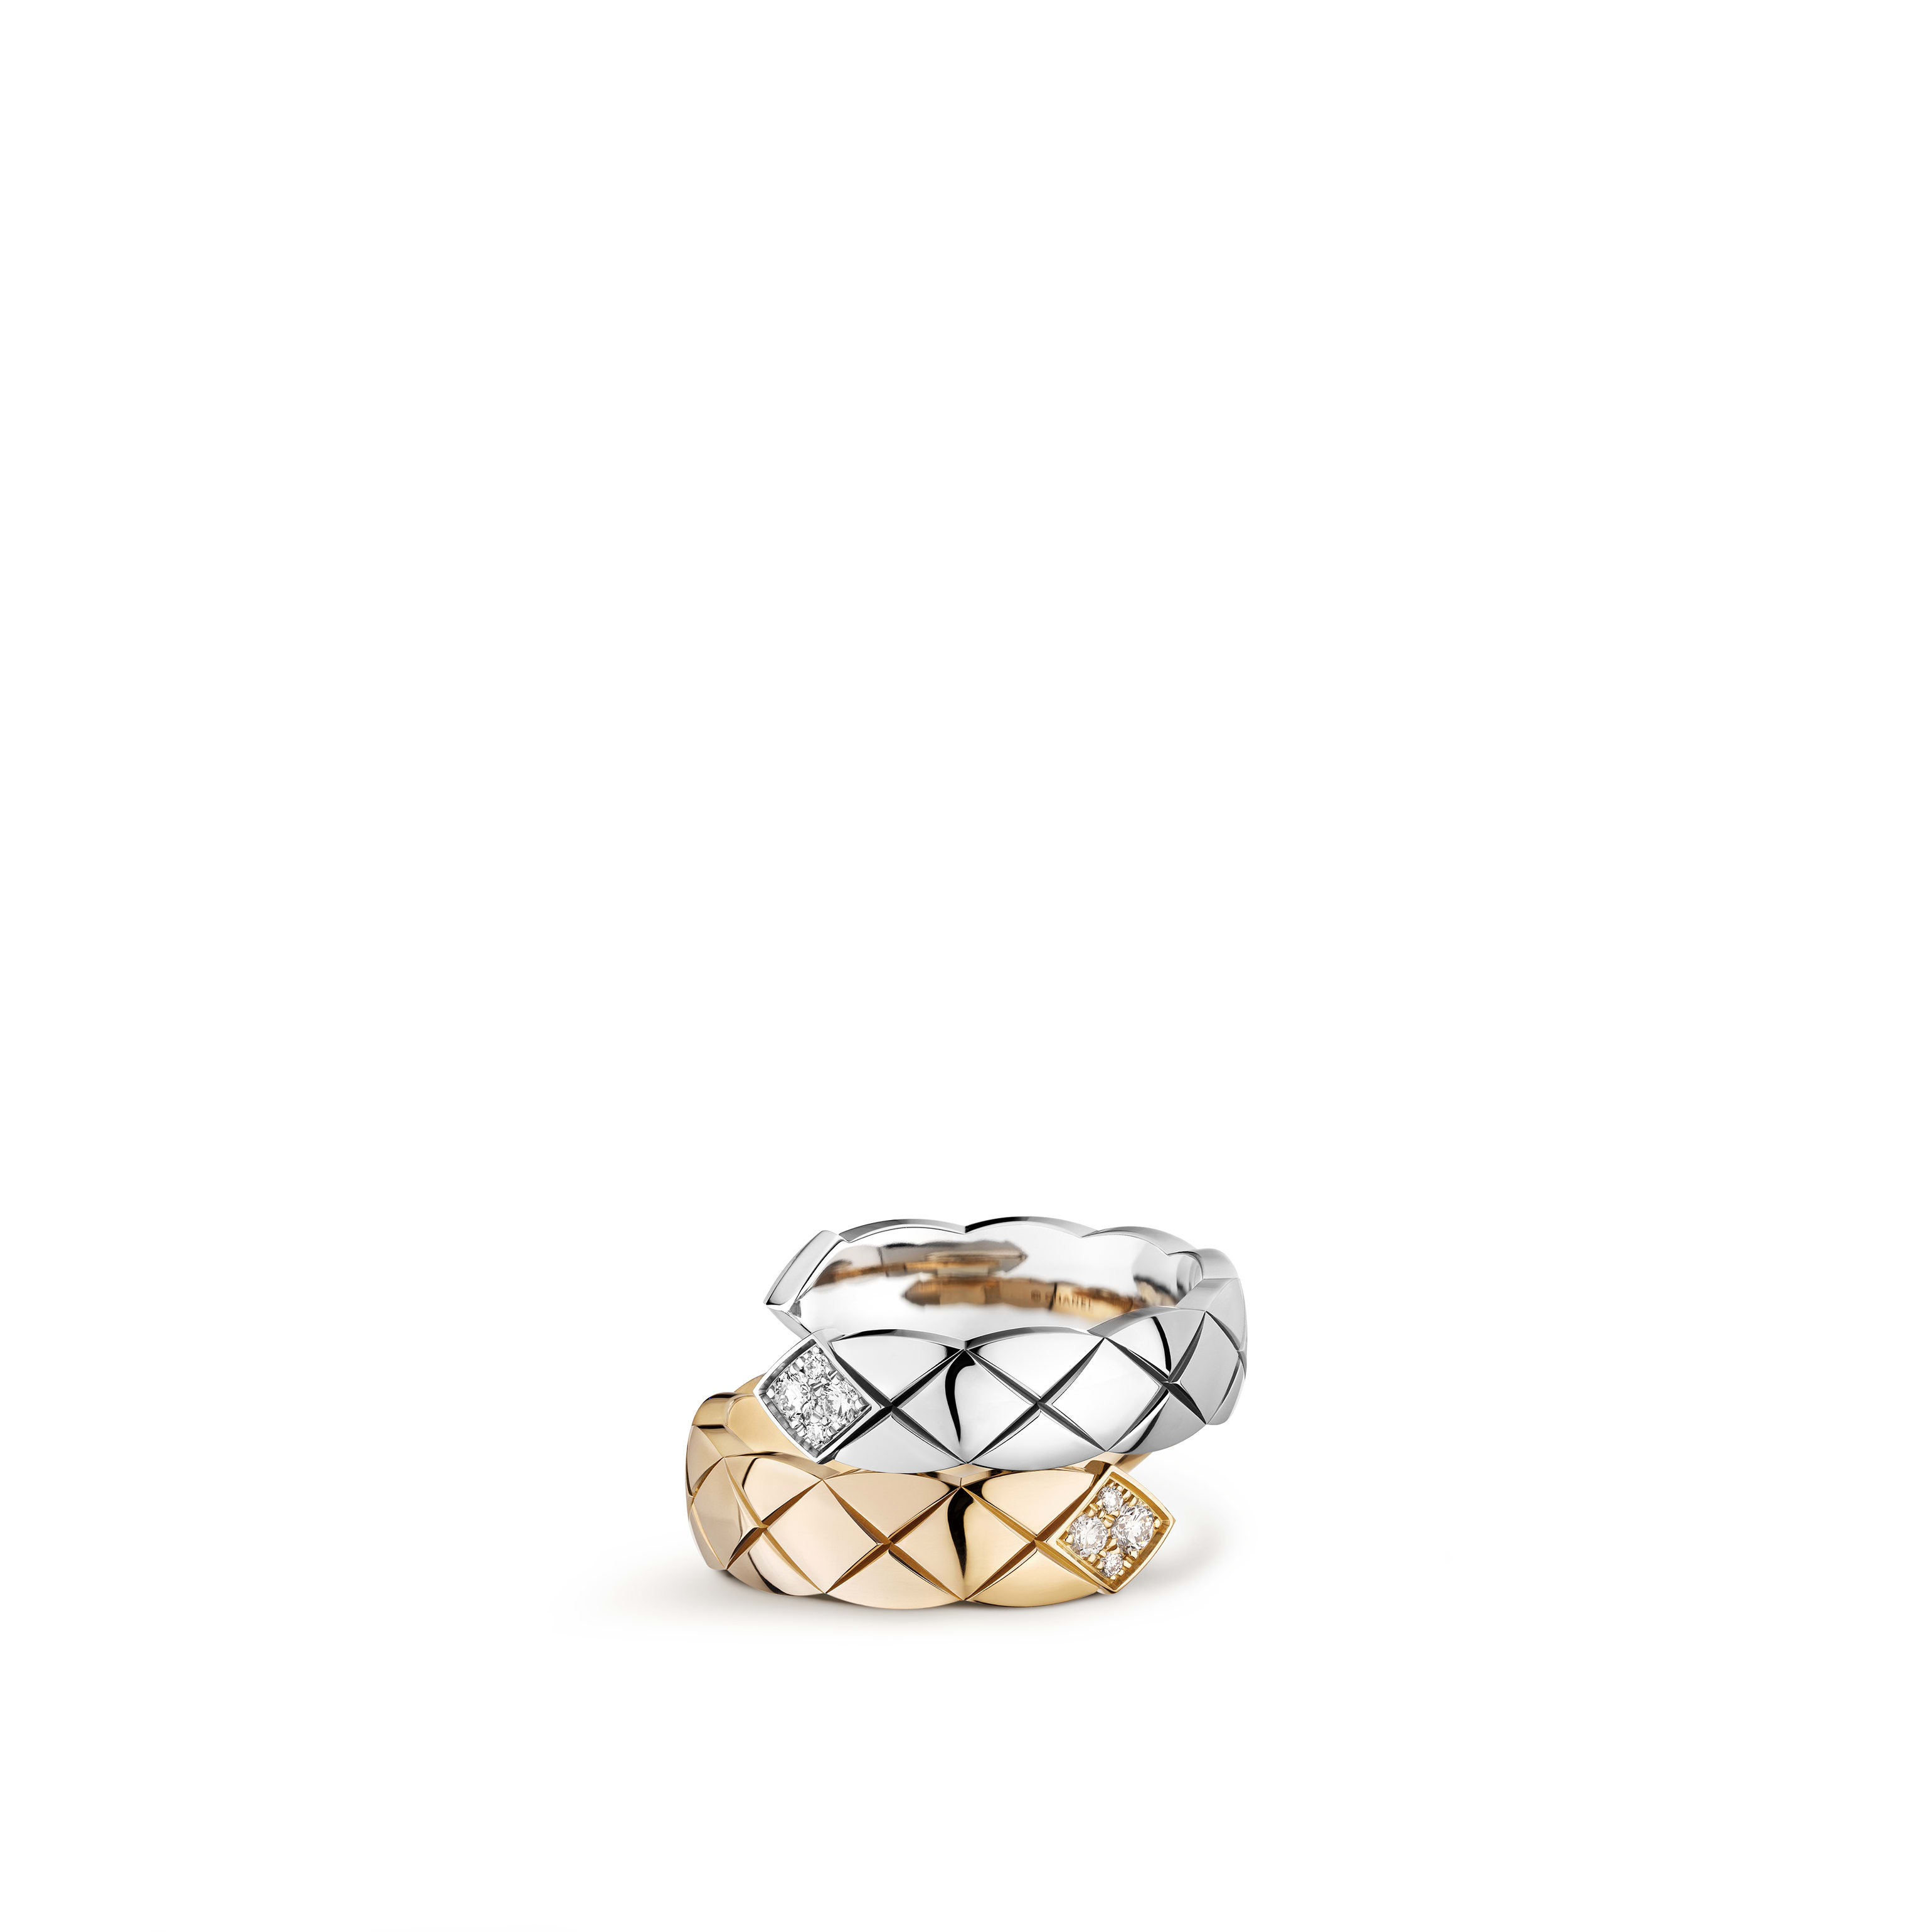 Coco Crush Toi et Moi ring - Quilted motif, large version, 18K white and BEIGE GOLD, diamonds - CHANEL - Default view - see standard sized version